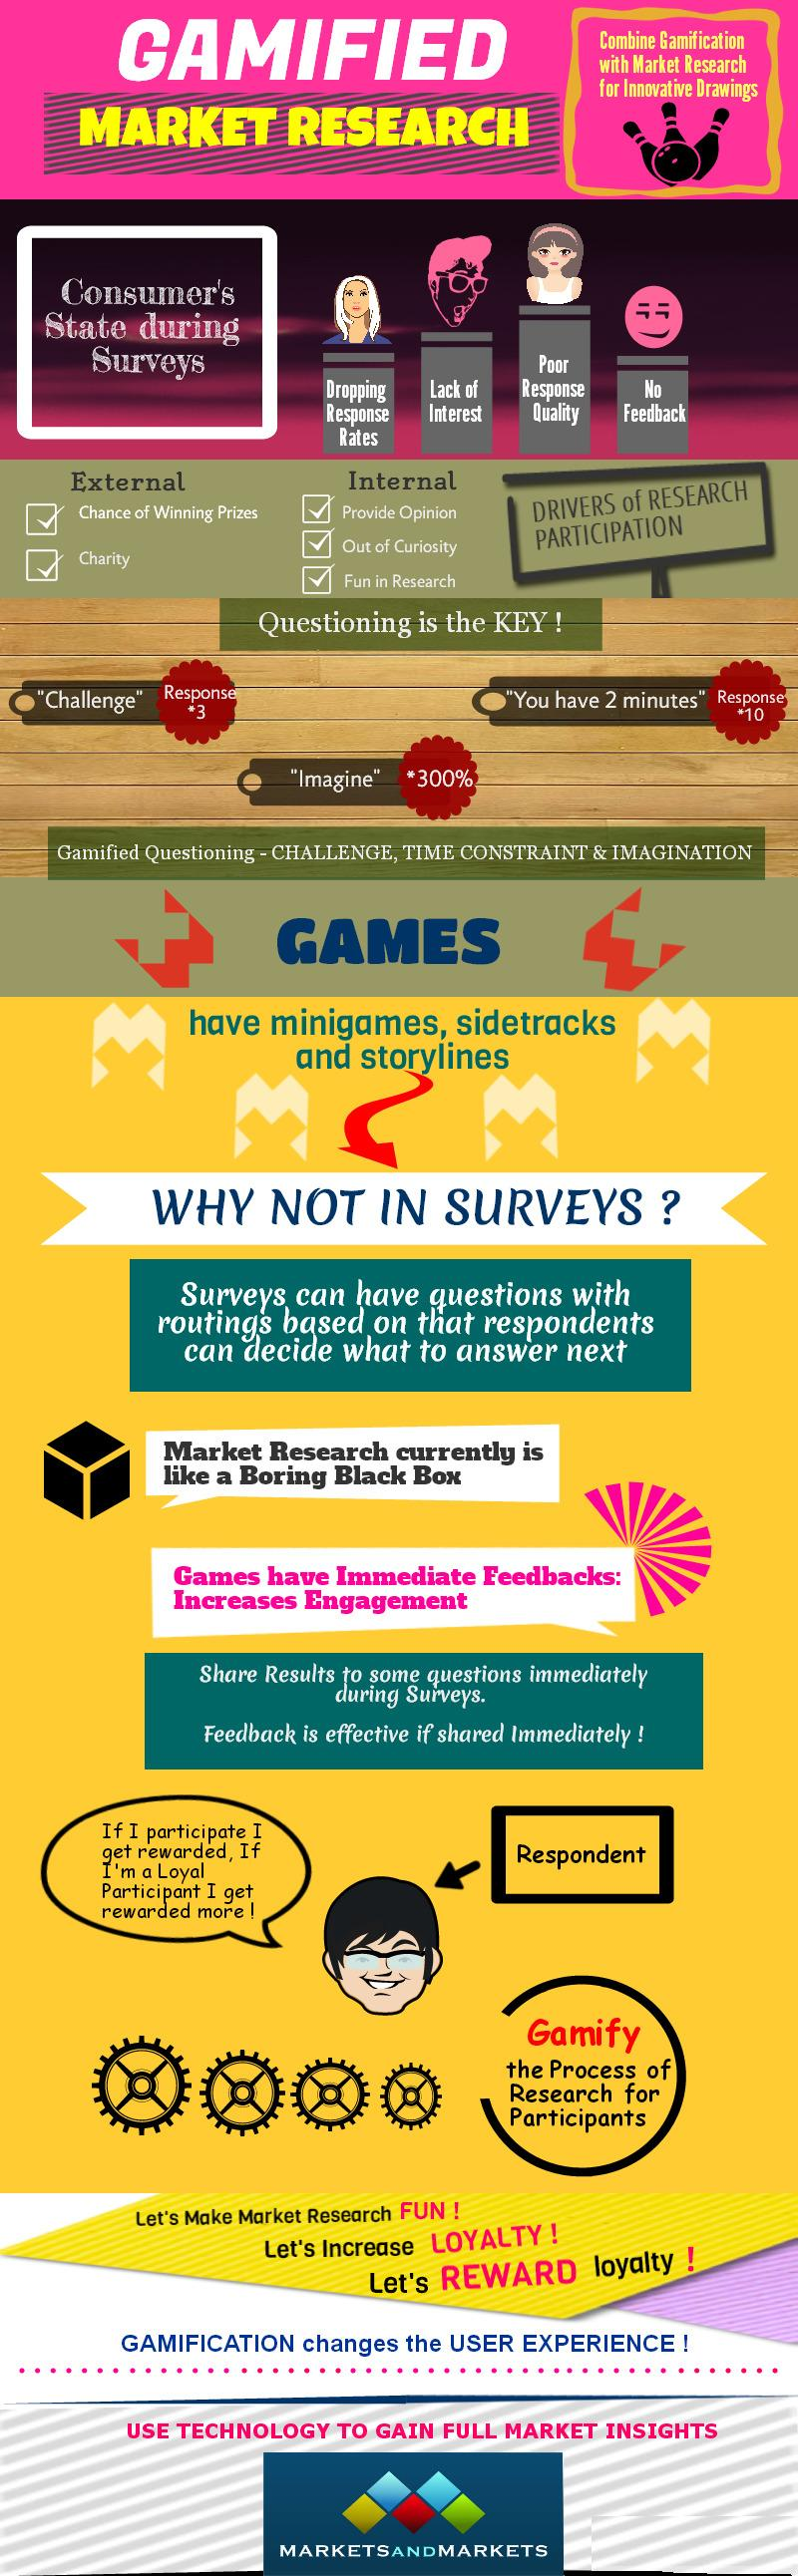 infographic gamification with market research